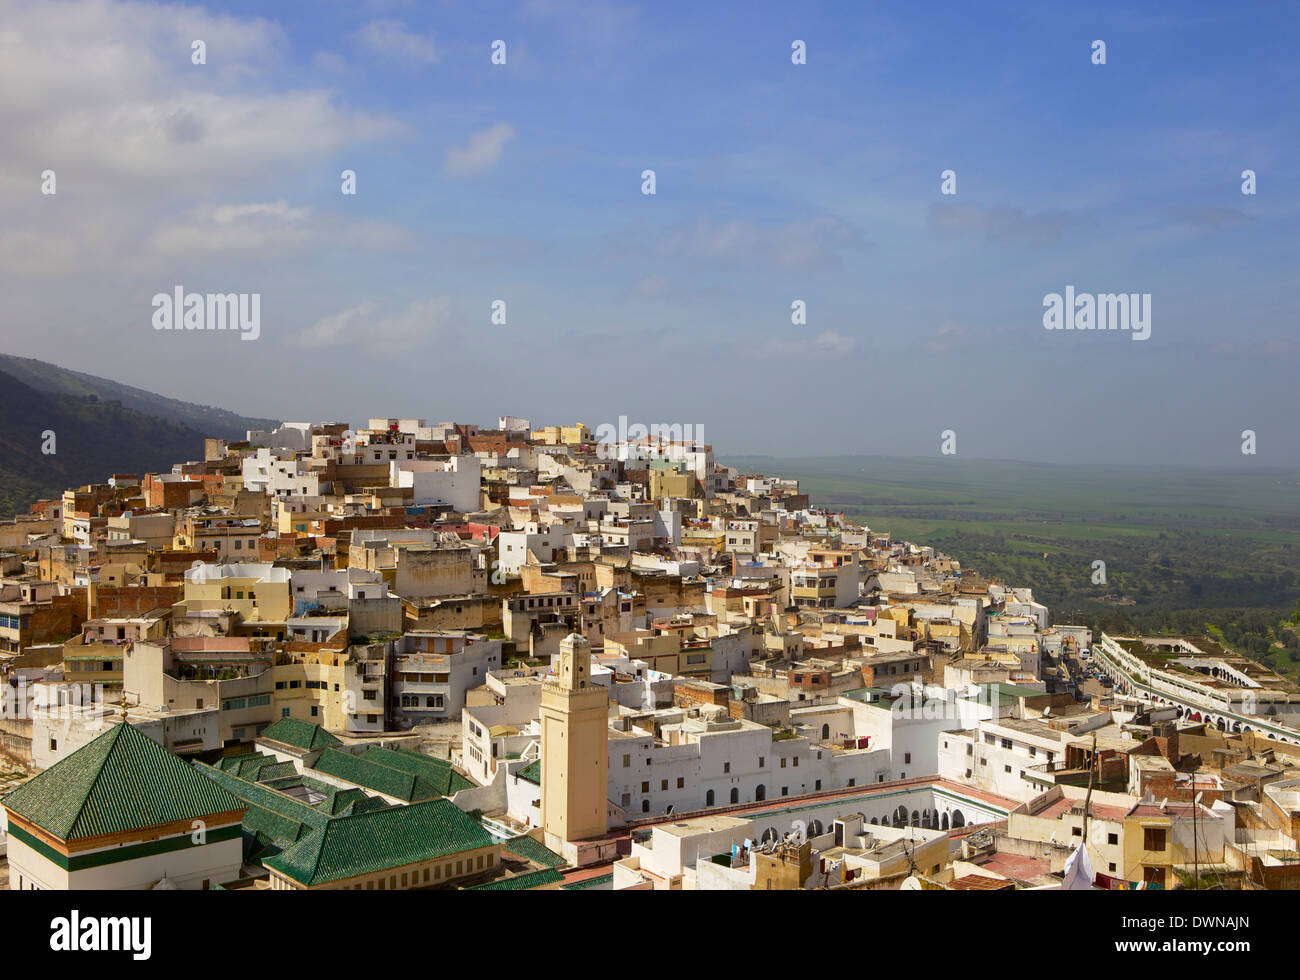 Aerial view of the tiled roofs of the sacred city of Moulay Idriss, including Zaouia of Moulay Idriss, Morocco, Africa - Stock Image